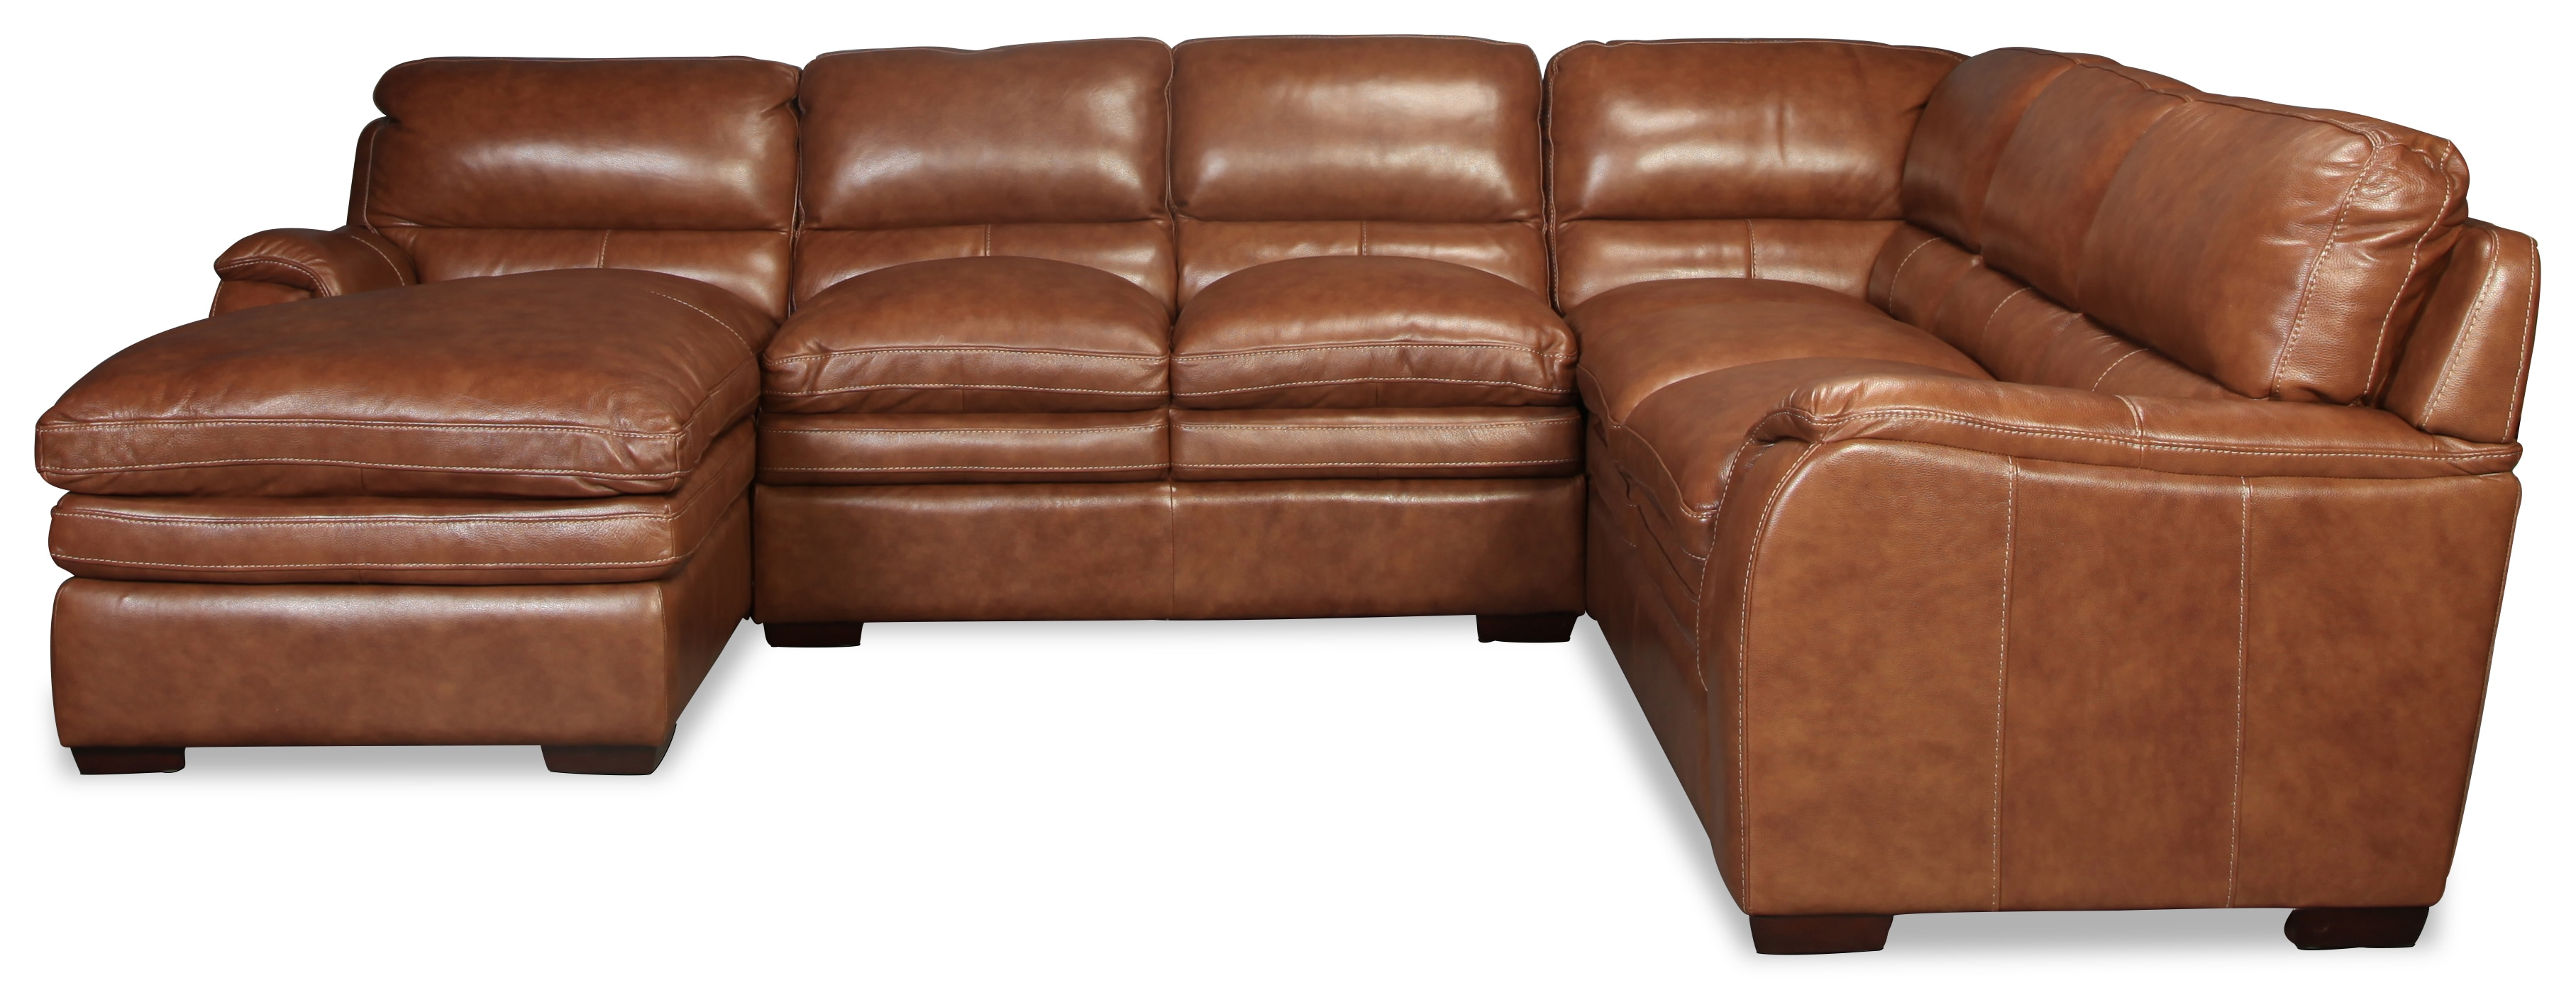 Living Room Furniture - Meridian 3 pc. Leather Sectional